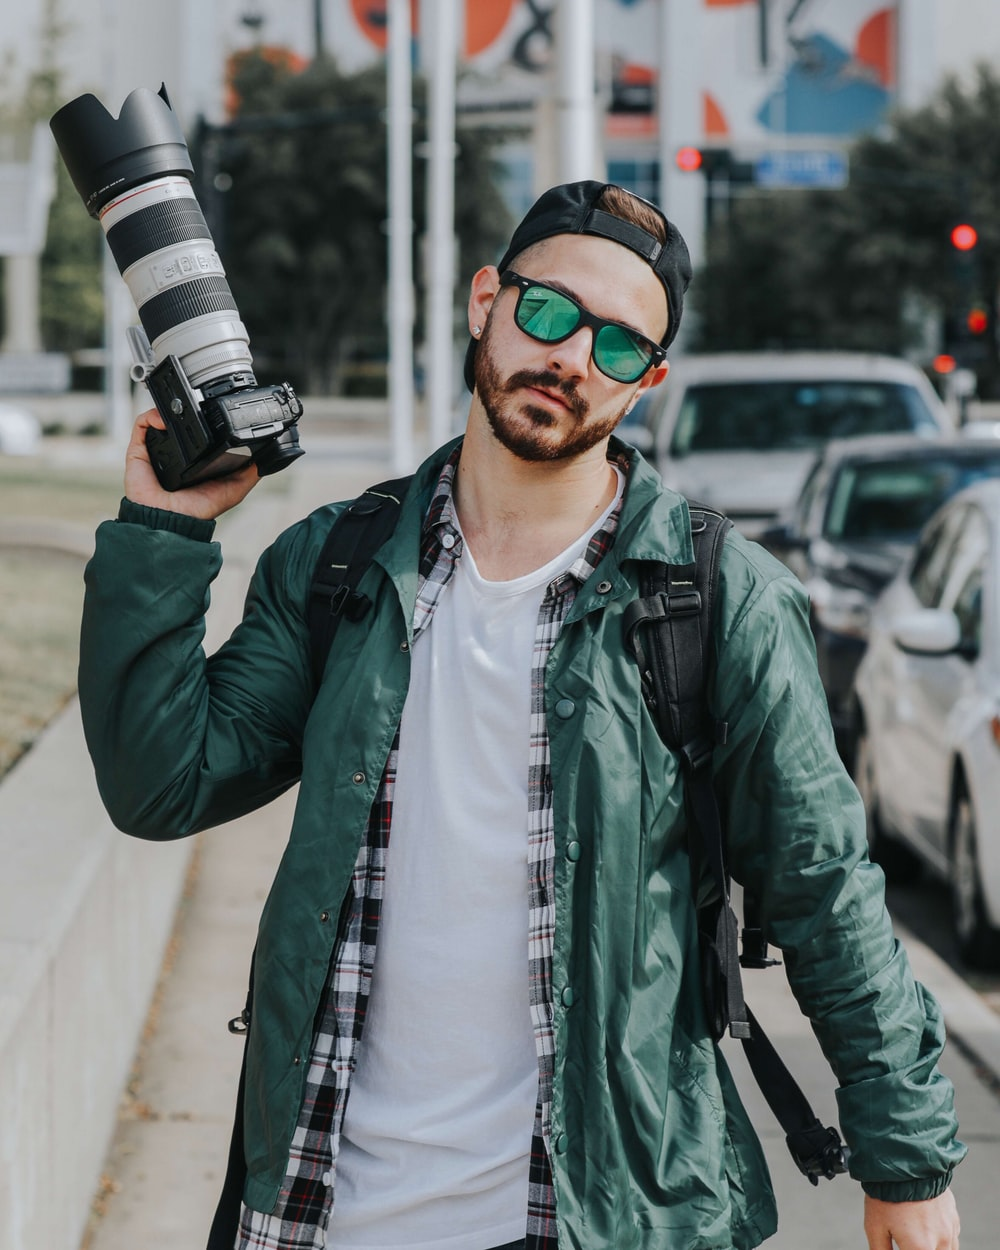 man holding DSLR camera wearing green button-up jacket beside cars